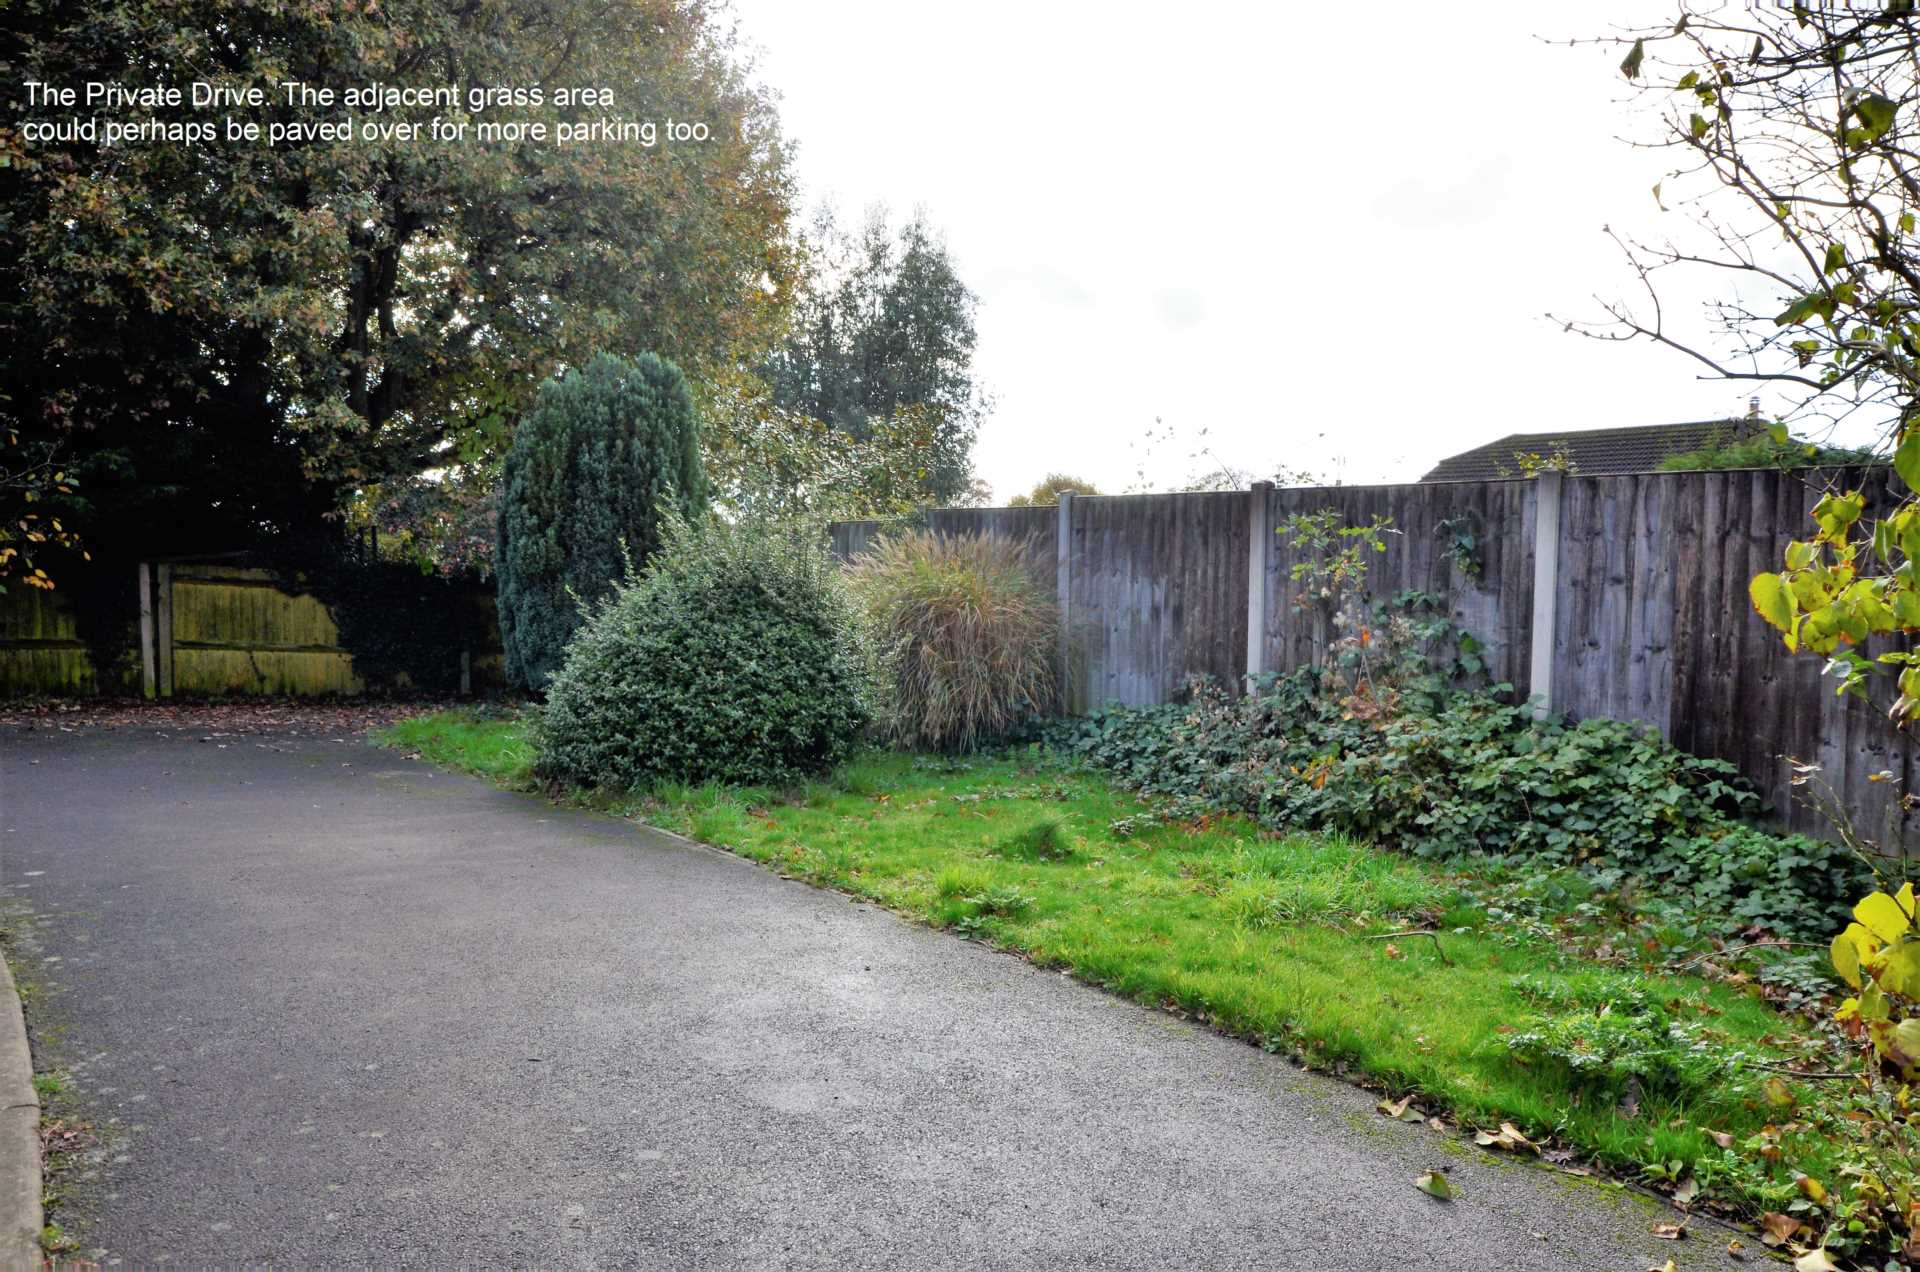 Quilters Drive, Billericay, Image 10